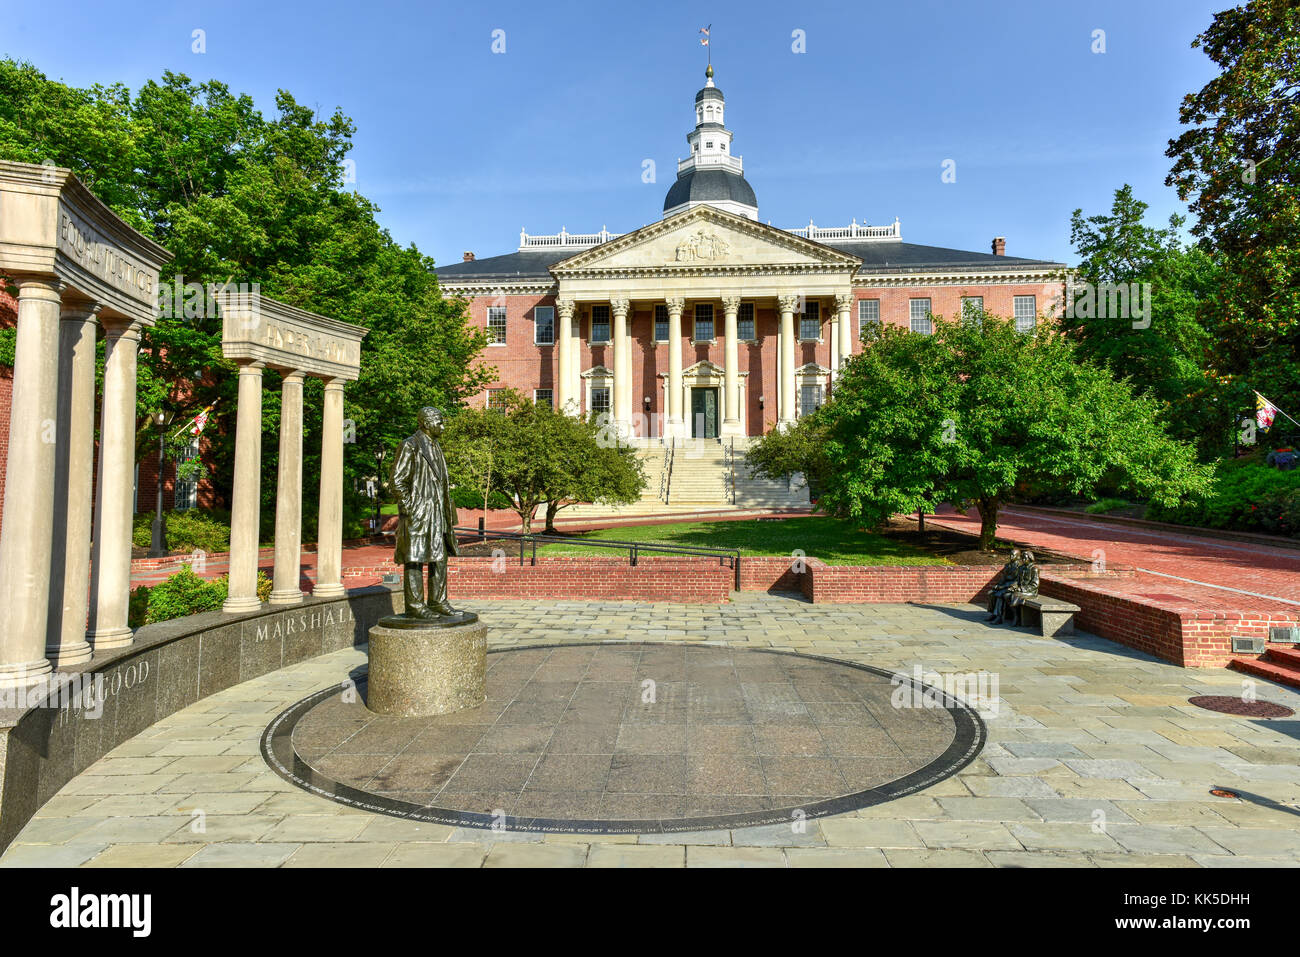 Thurgood Marshall Monument beside the Maryland State Capital building in Annapolis, Maryland on summer afternoon. Stock Photo